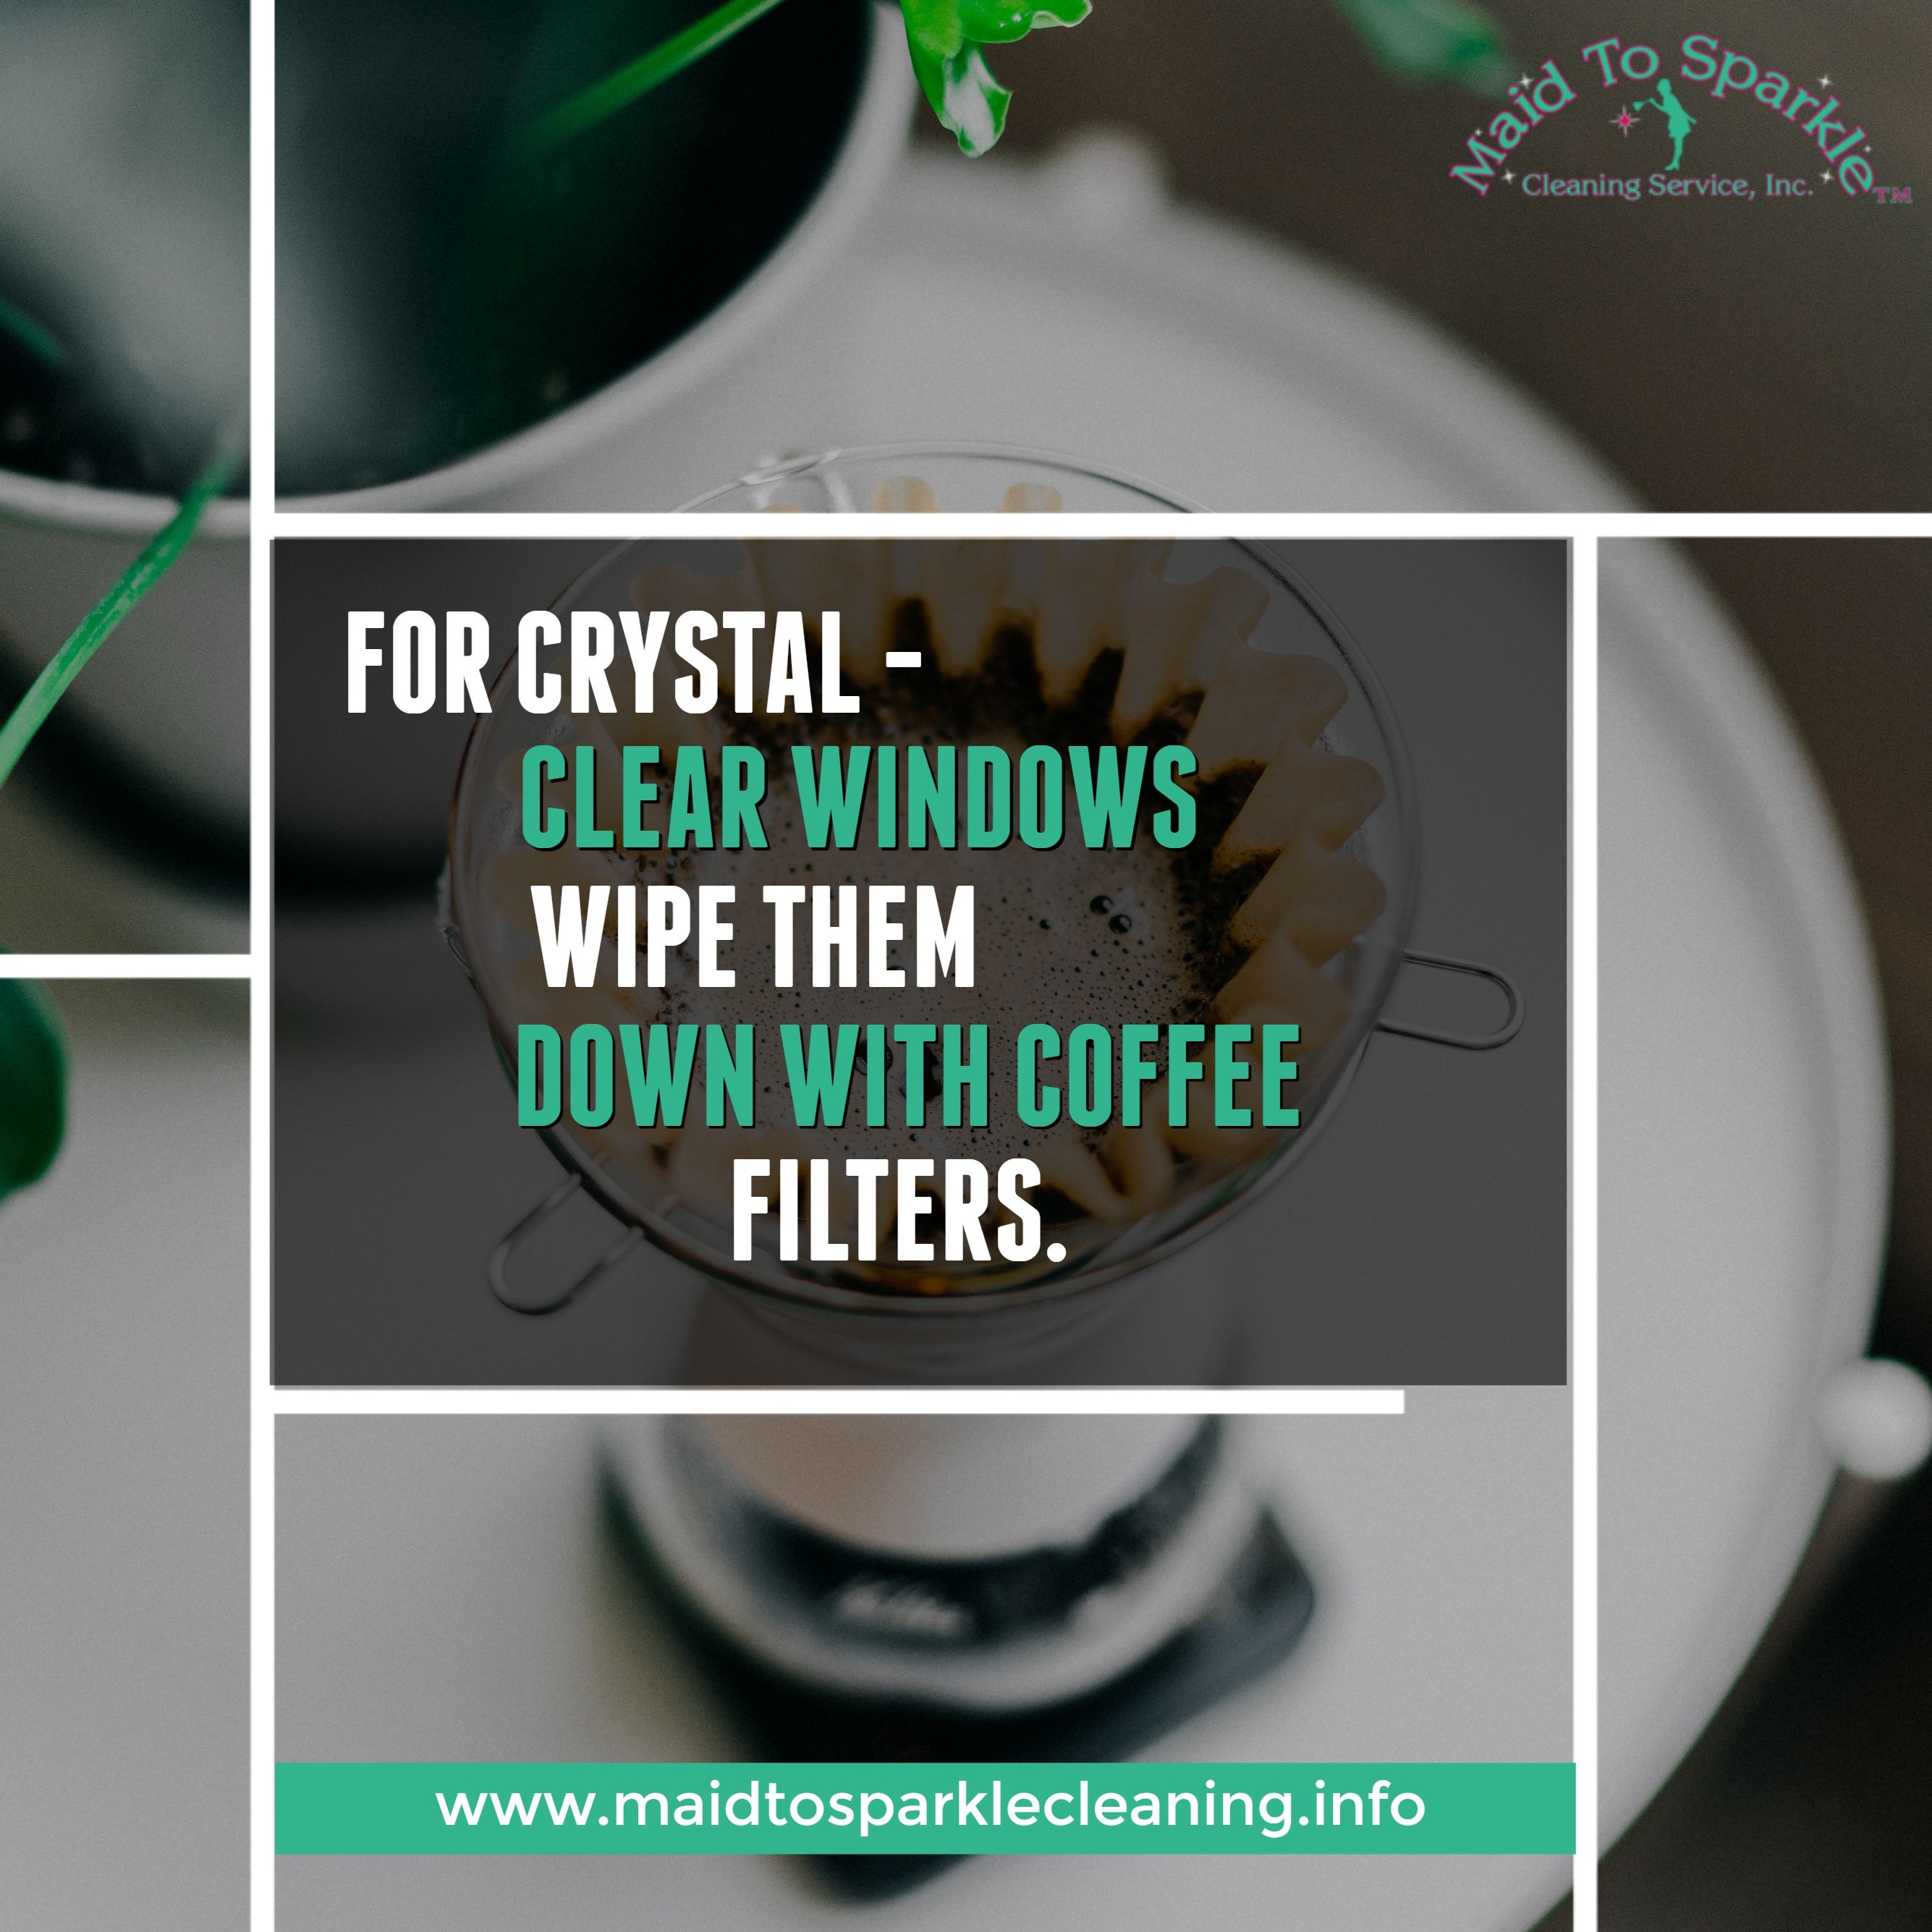 For Crystal Clear Windows Wipe Them Down With Coffee Filters Maidtosparklecleinc Cleaning Clean Cleaning Ceiling Fans Clean Sink House Cleaning Services